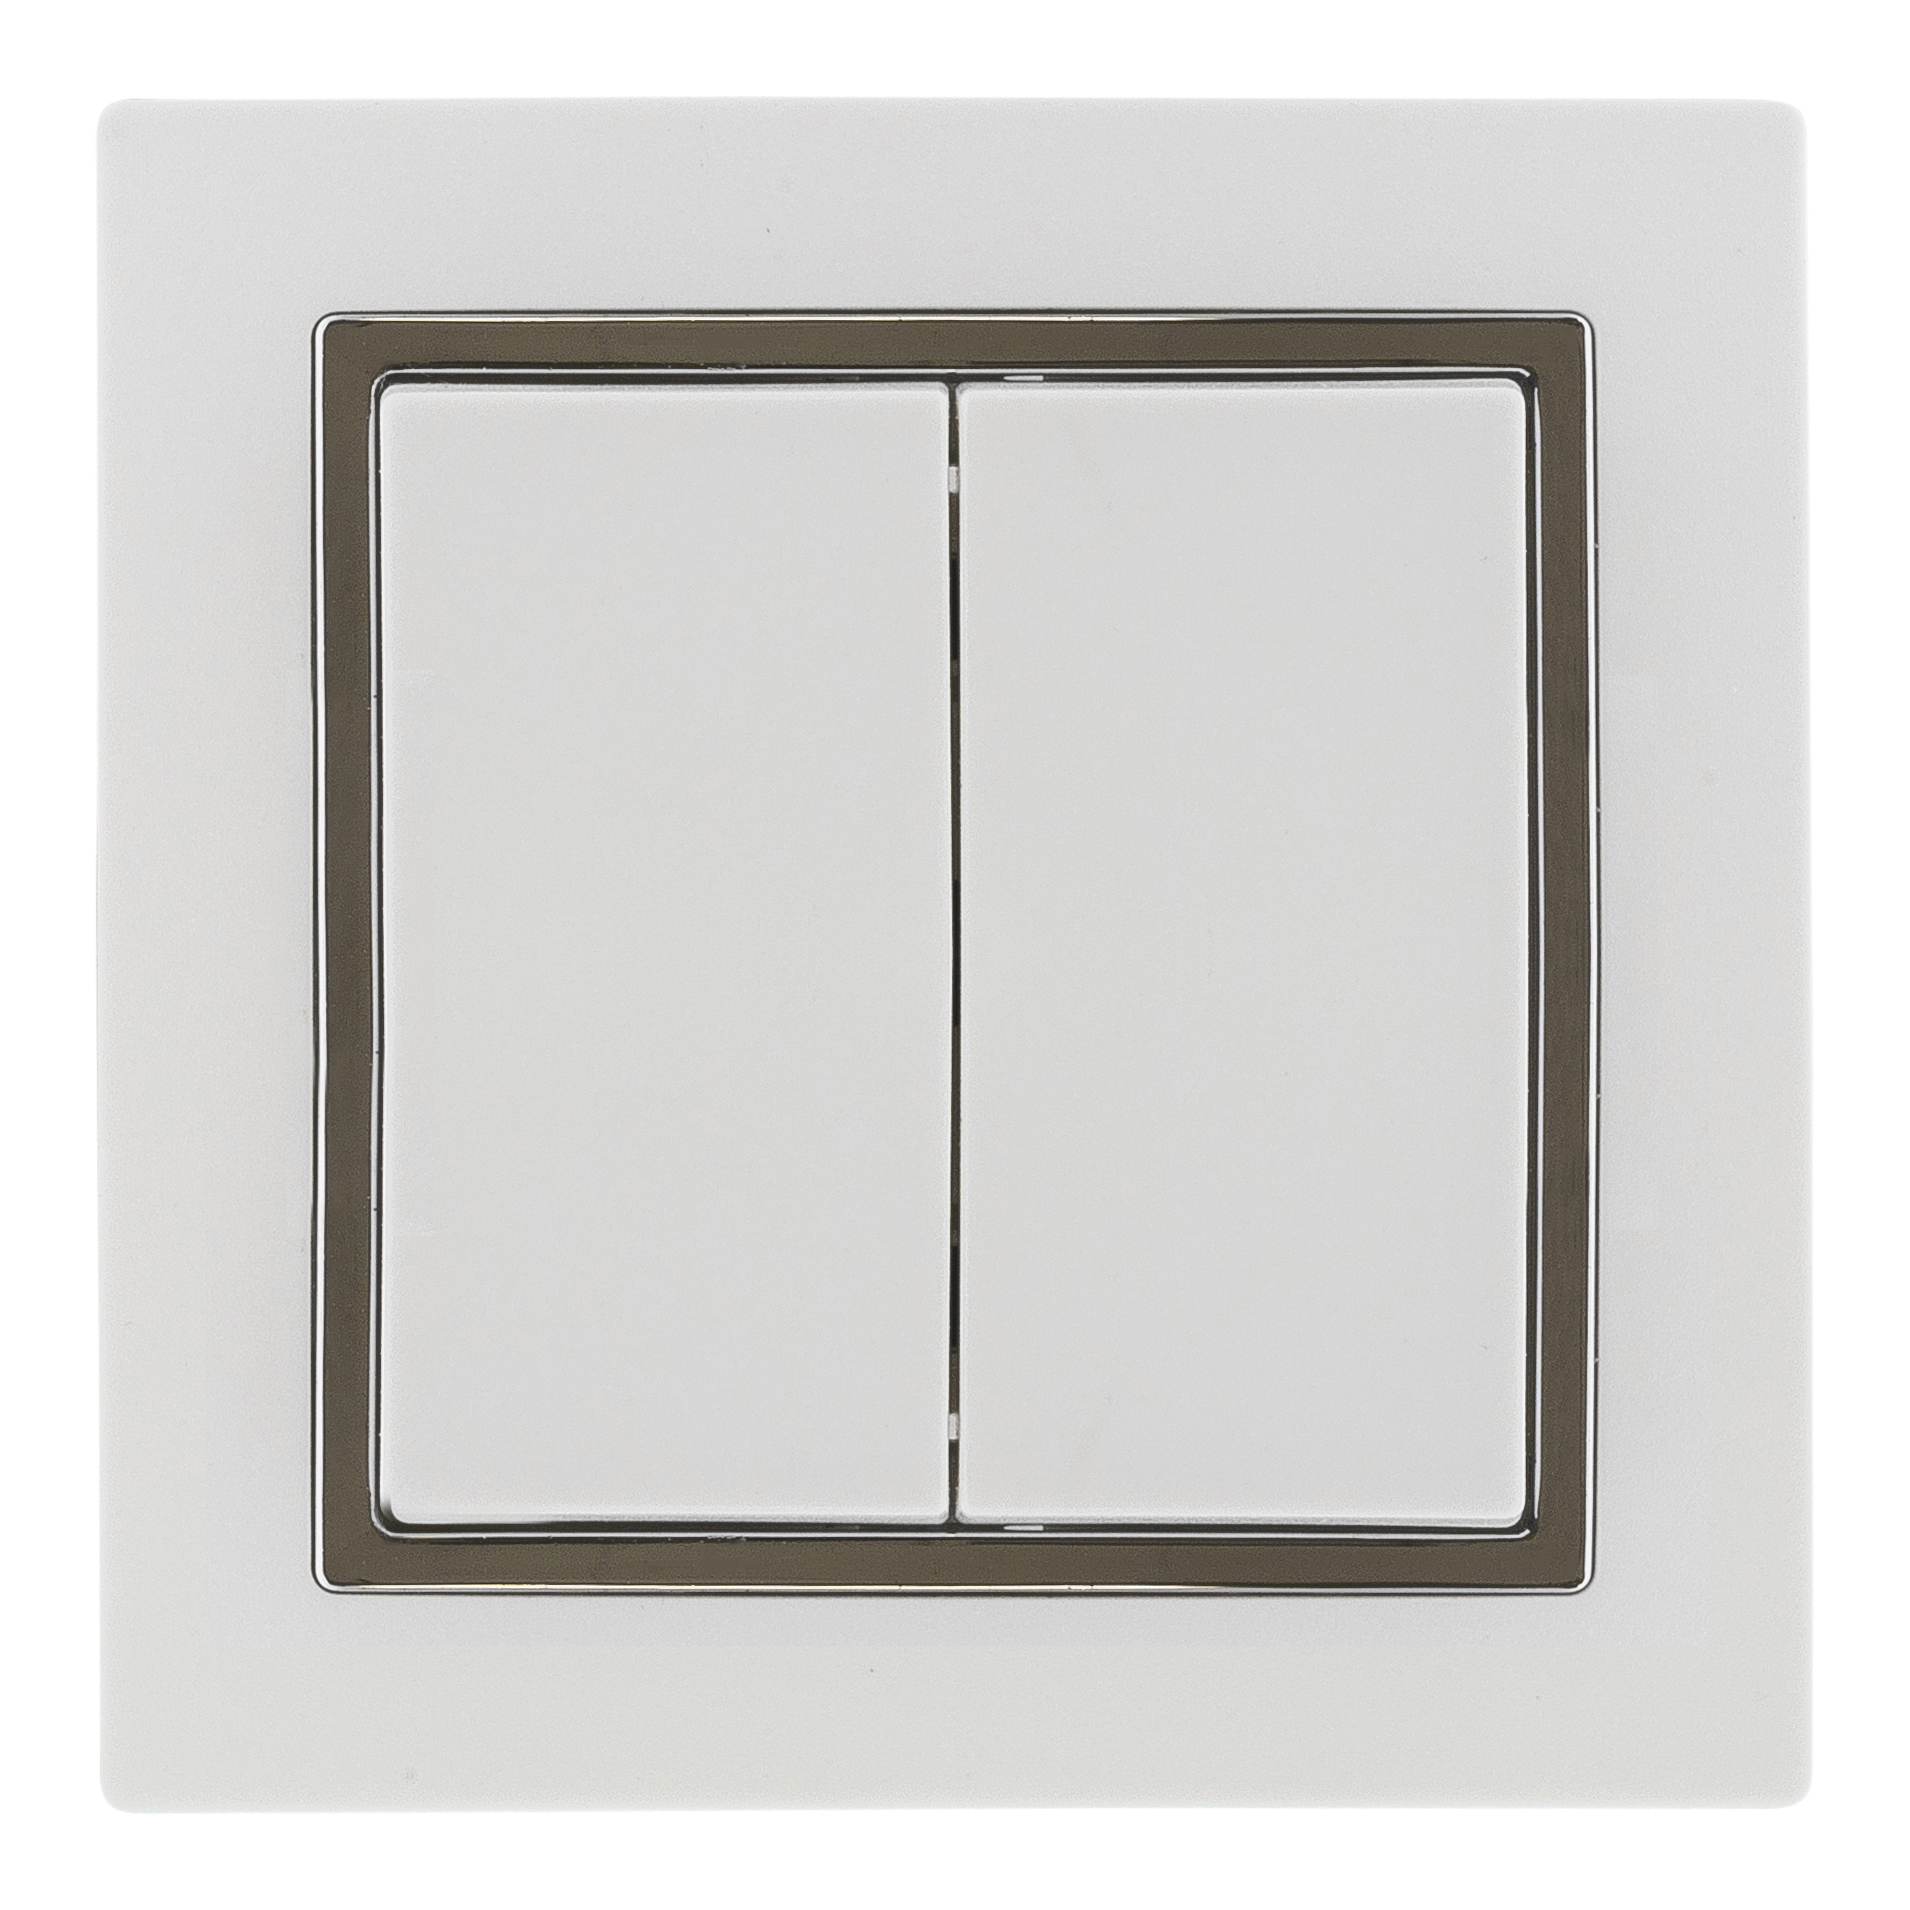 Epzi switch with two buttons, flush mount, cross-connection, white H1-H210M (Kan sendes i brev)